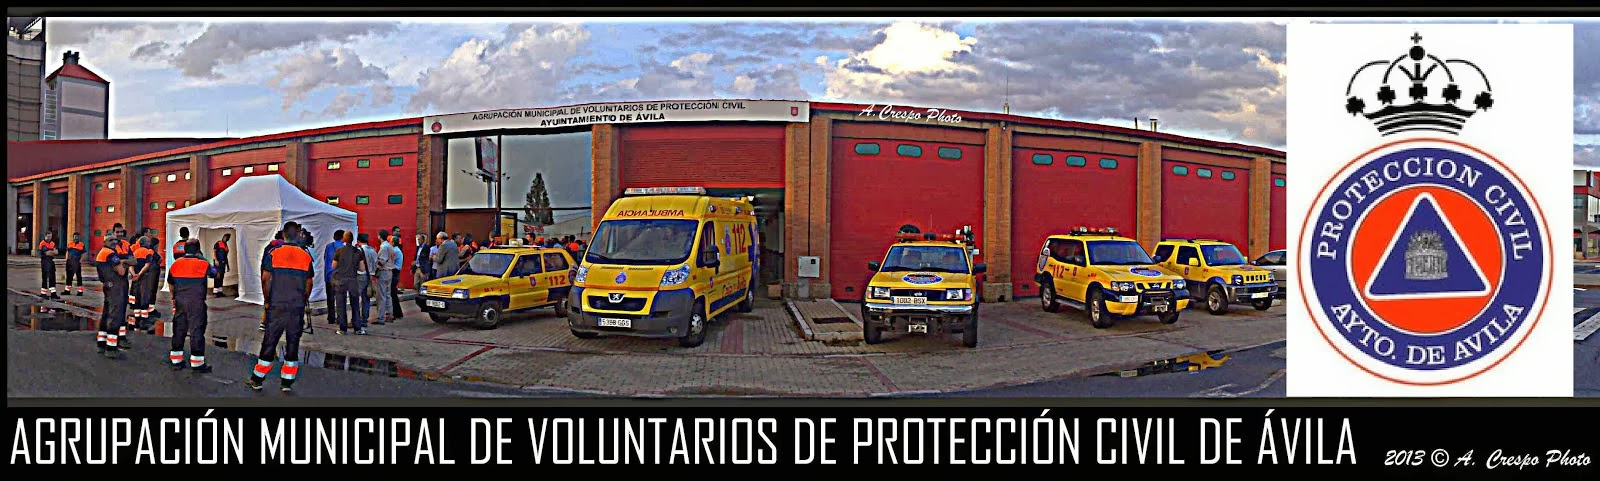 Proteccion civil de Ávila